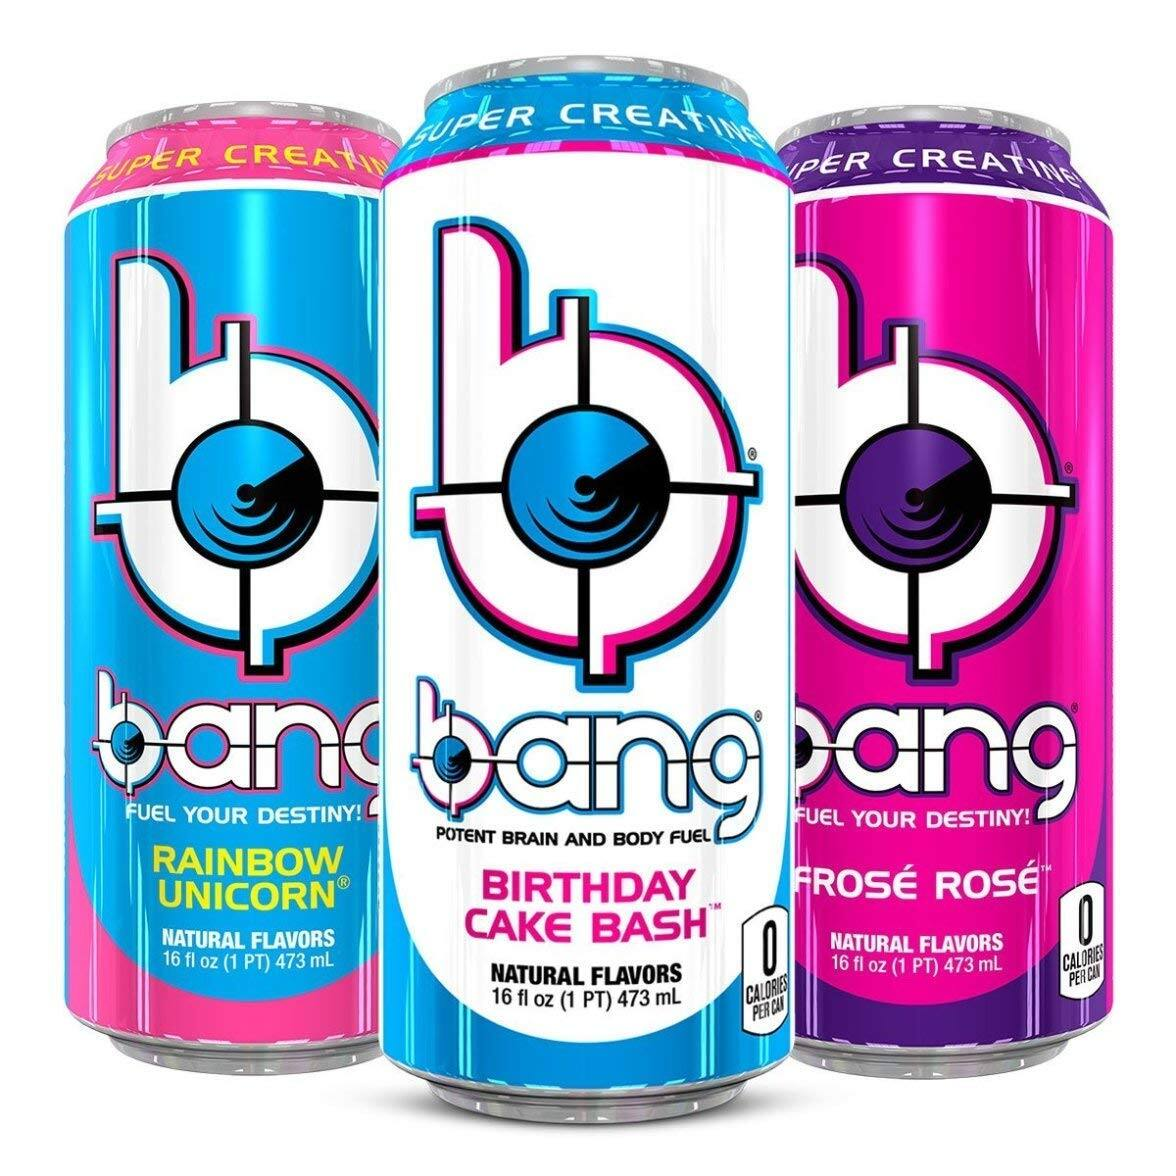 BANG Energy drink less than $1 a can shipped WYB 48 - $44.38 Shipped for 48 Cans $0.92